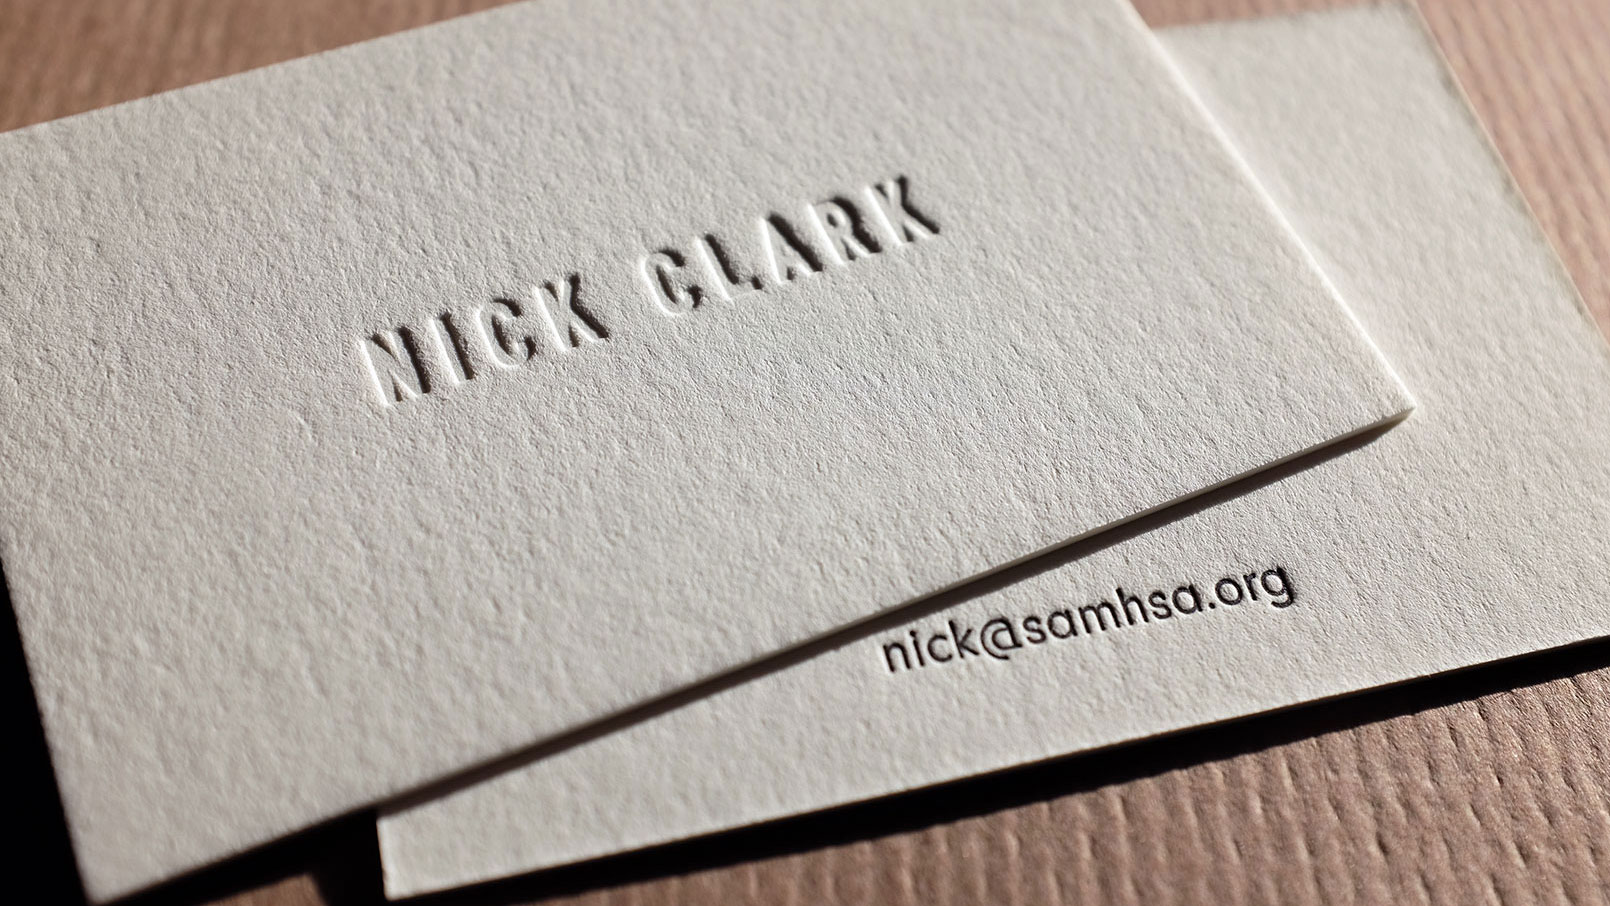 Business cards pritning nyc printing near me bestofprinting letterpress ultra thick business card printing long island reheart